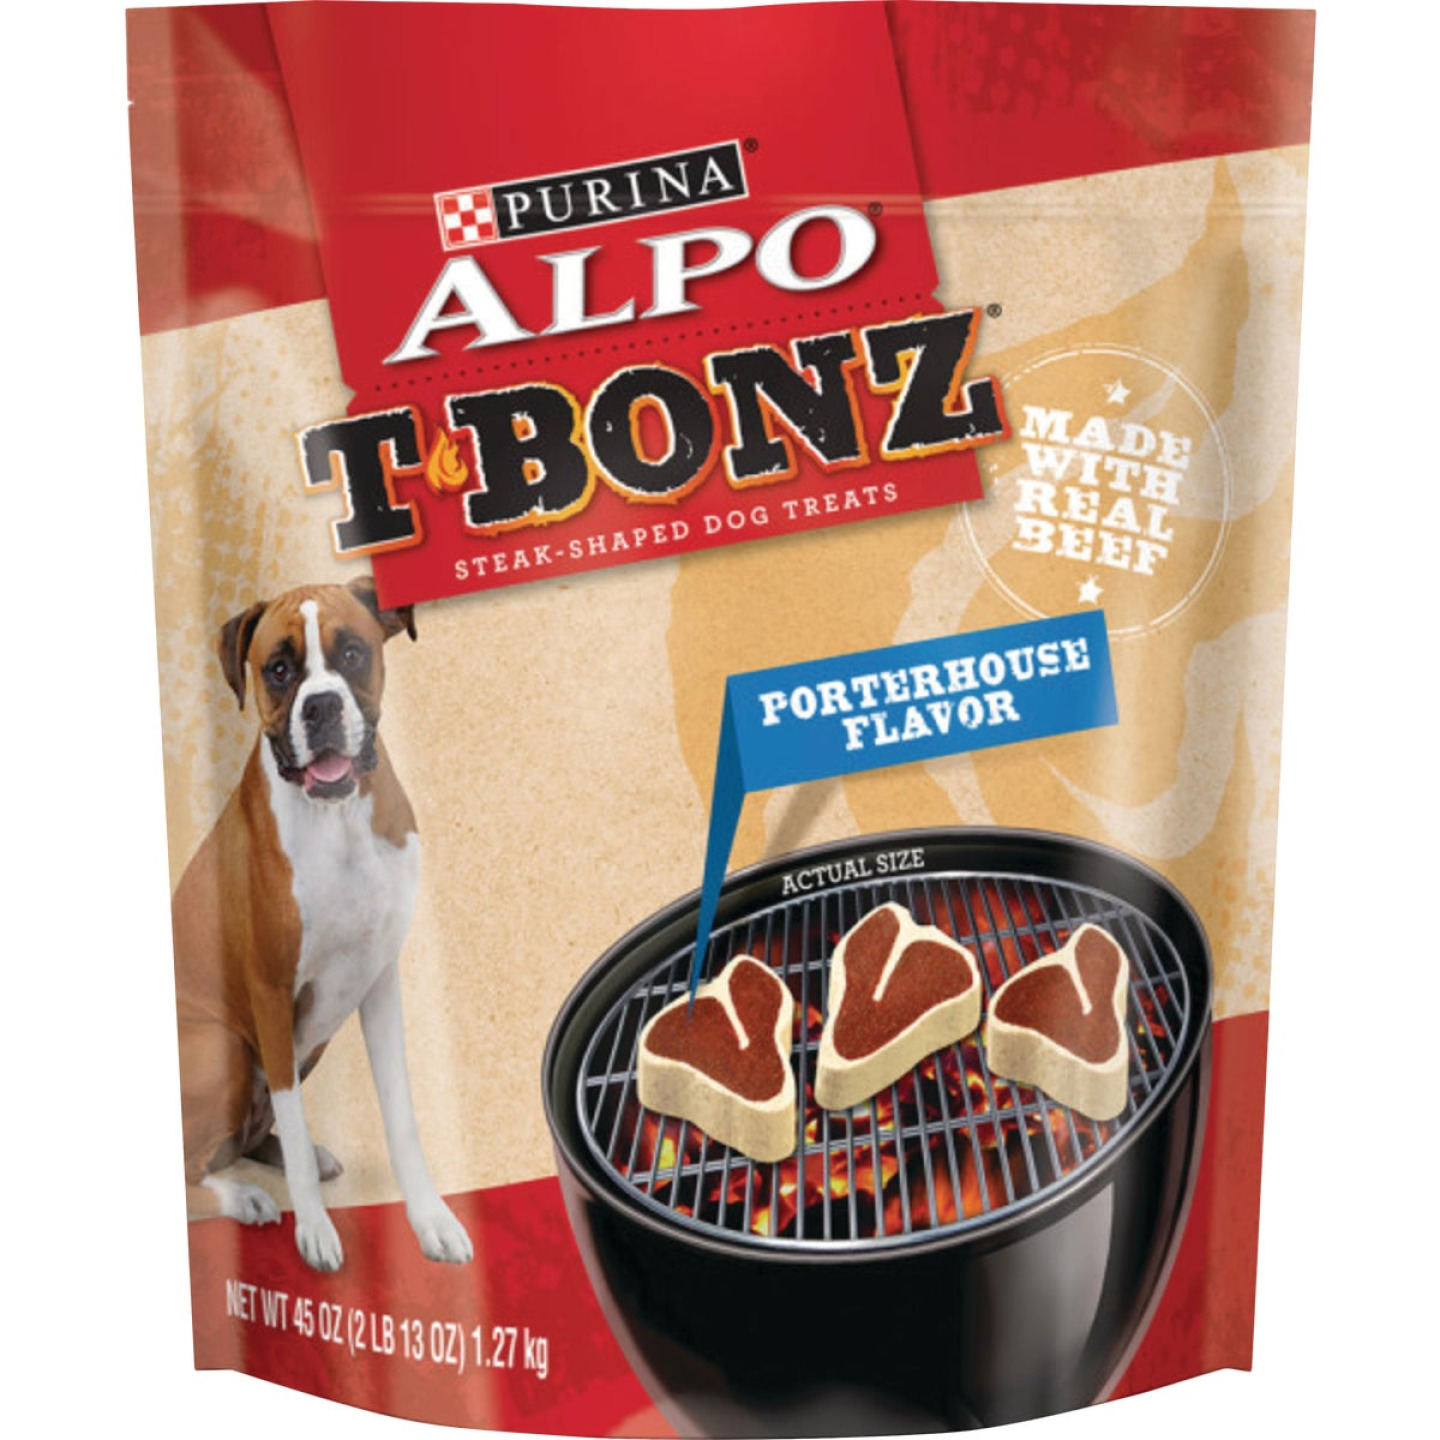 Purina Alpo T-Bonz Porterhouse Flavor Chewy Dog Treat, 45 Oz. Image 1